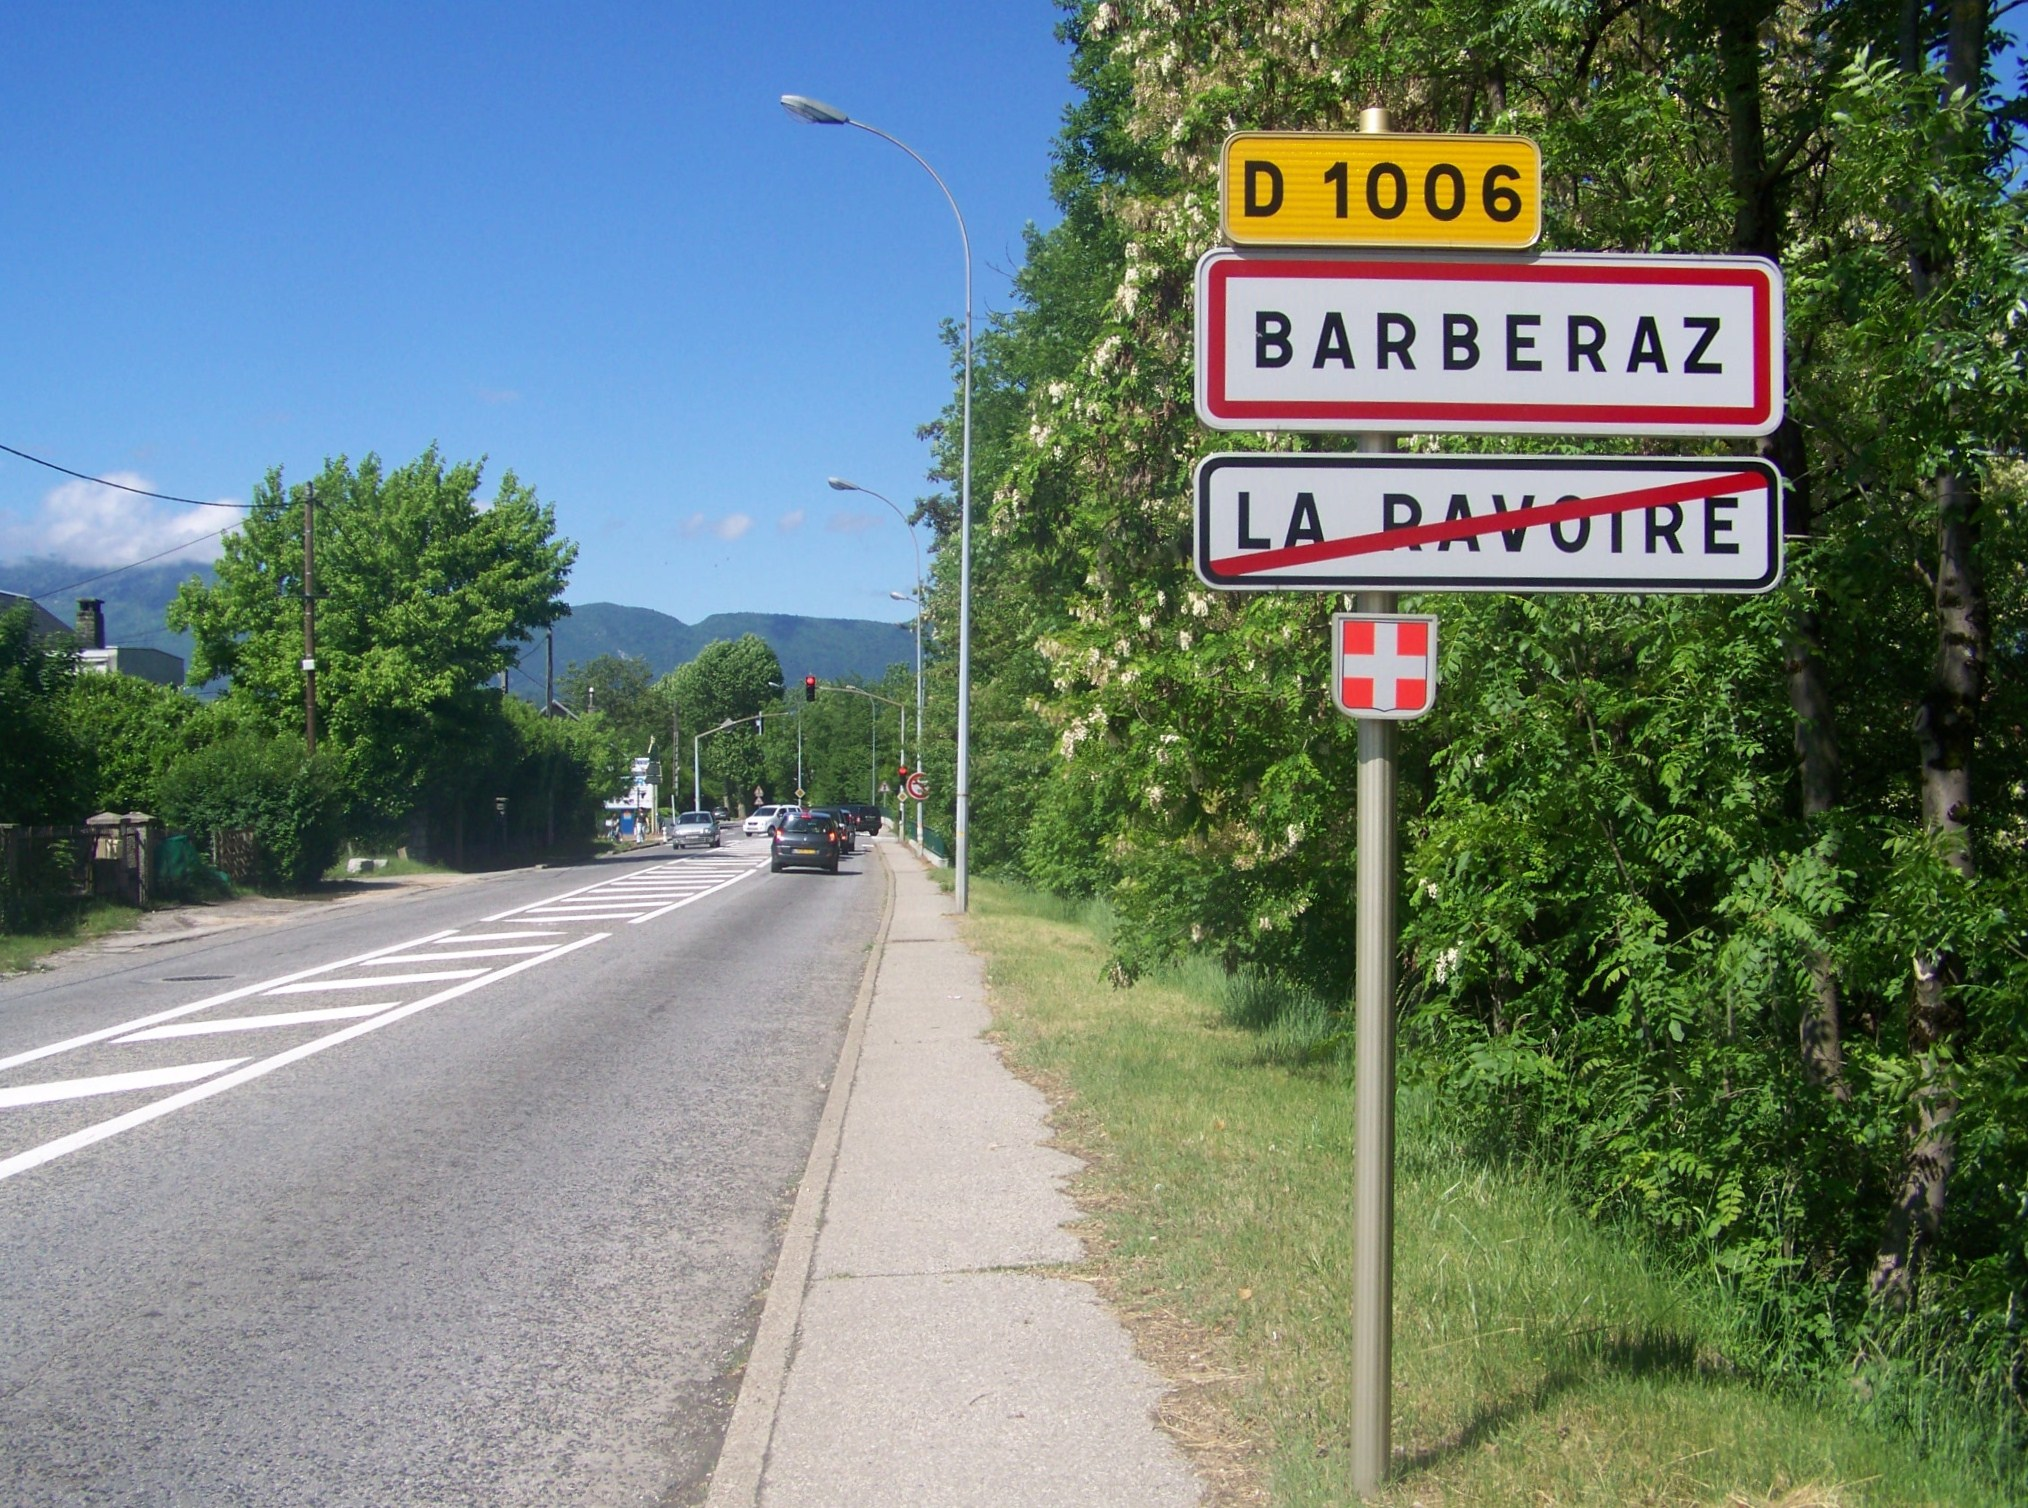 File:Barberaz (D 1006).JPG